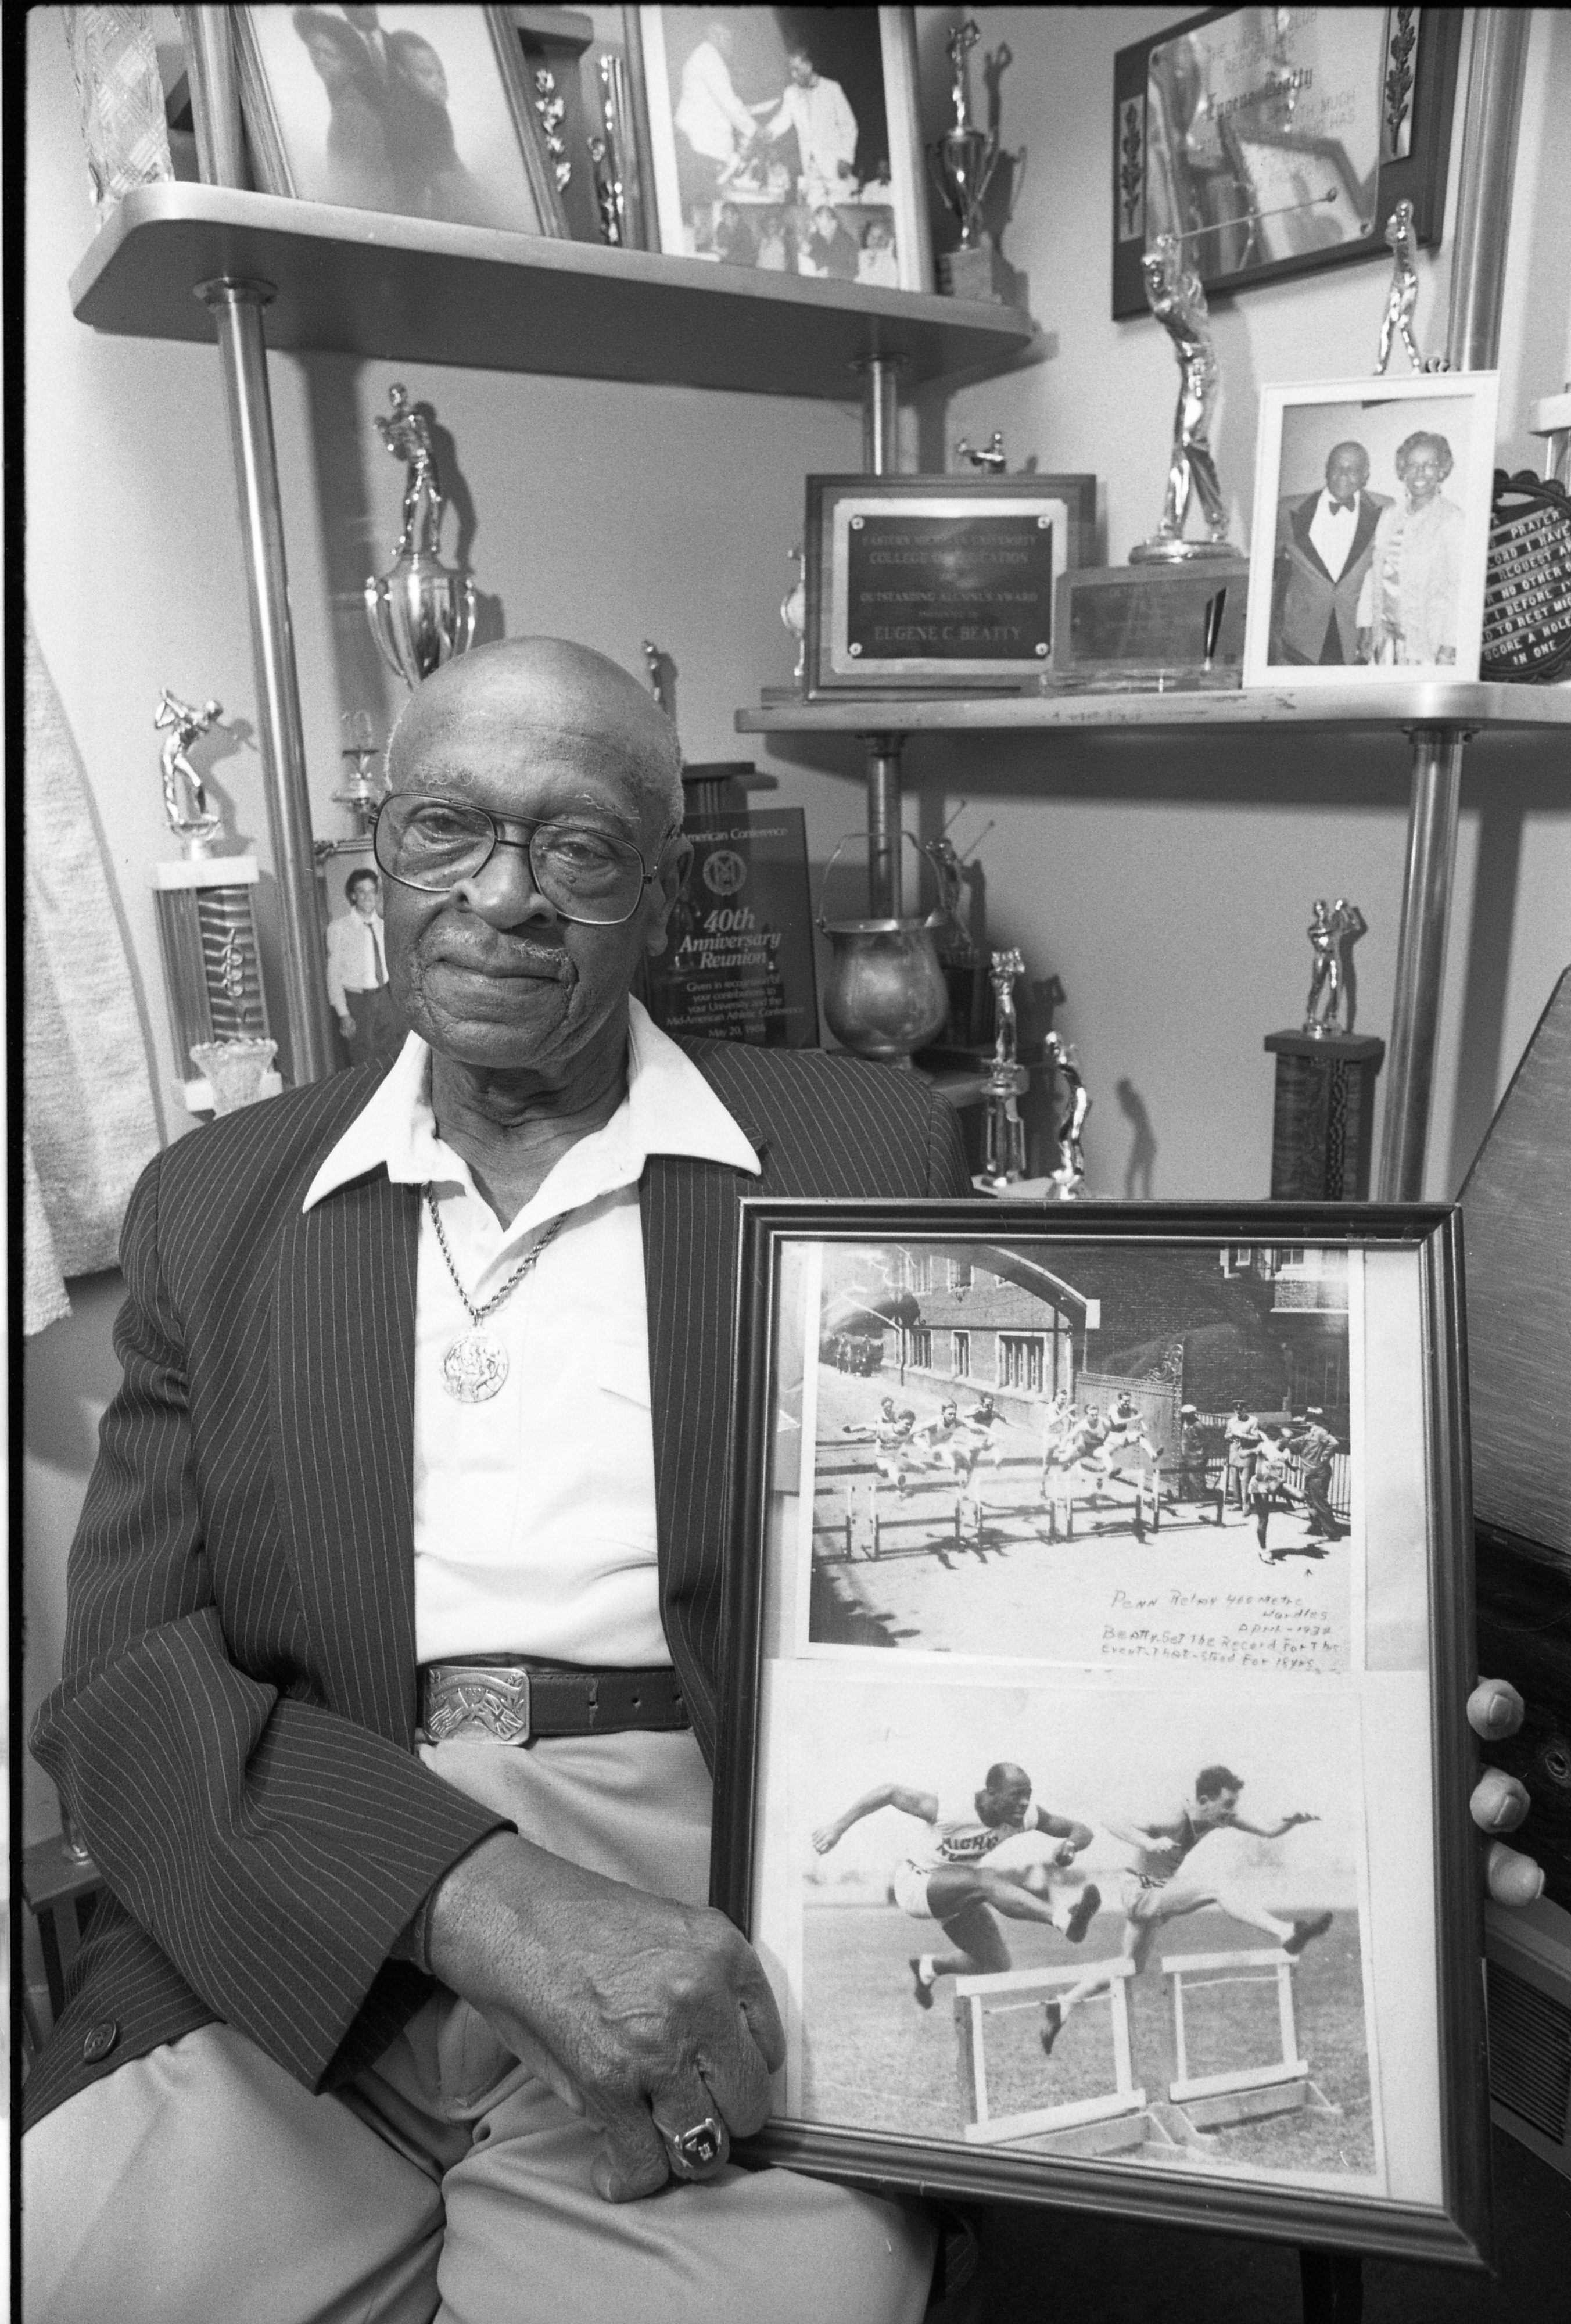 Eugene Beatty Showing Photos Of Himself Winning The 1932 Penn Relays, March 8, 1991 image